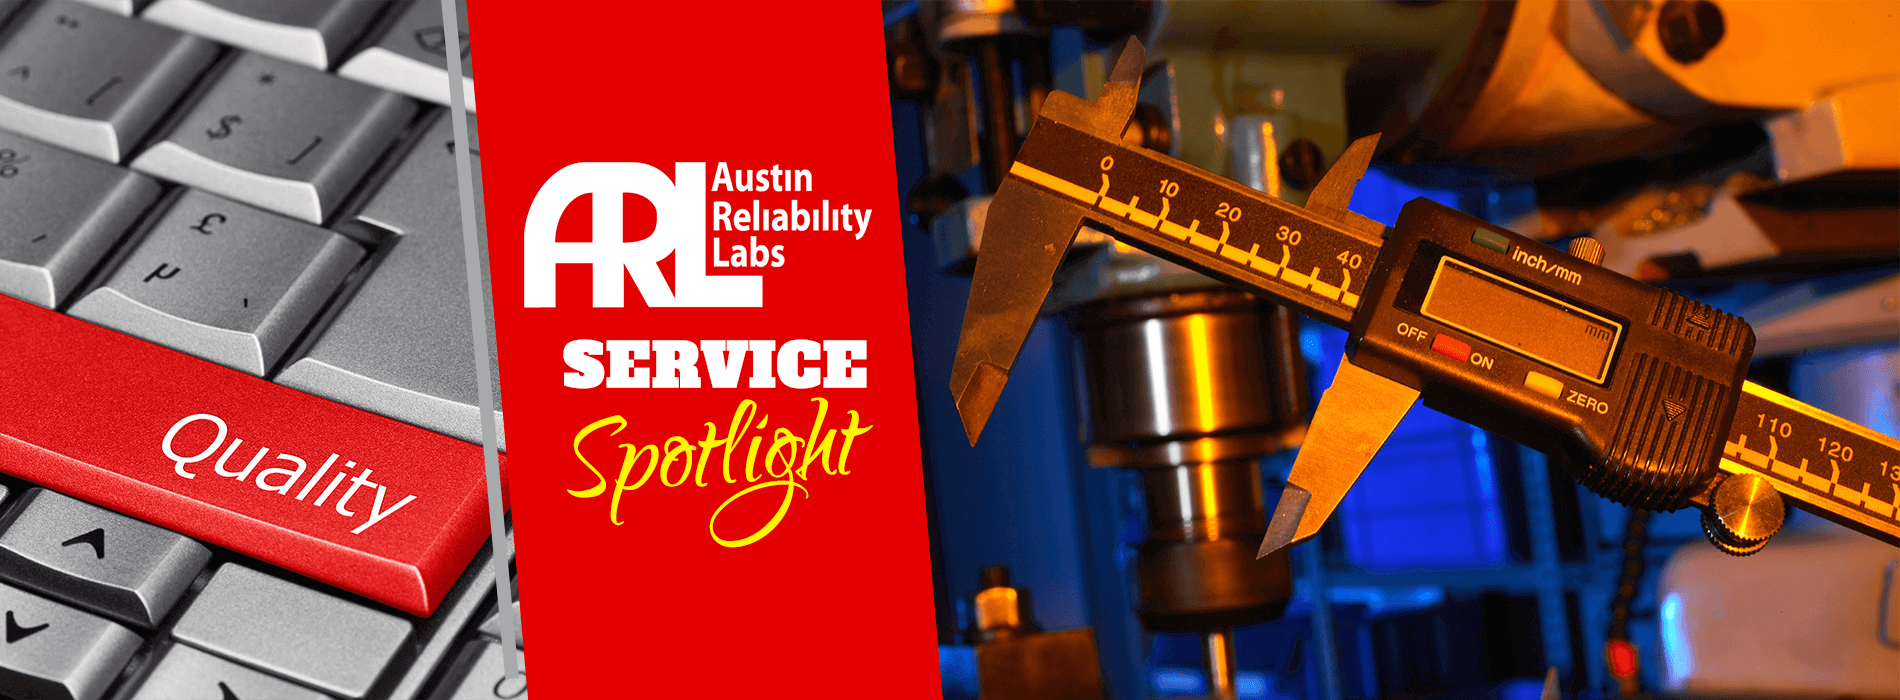 Qualification Testing Service Spotlight